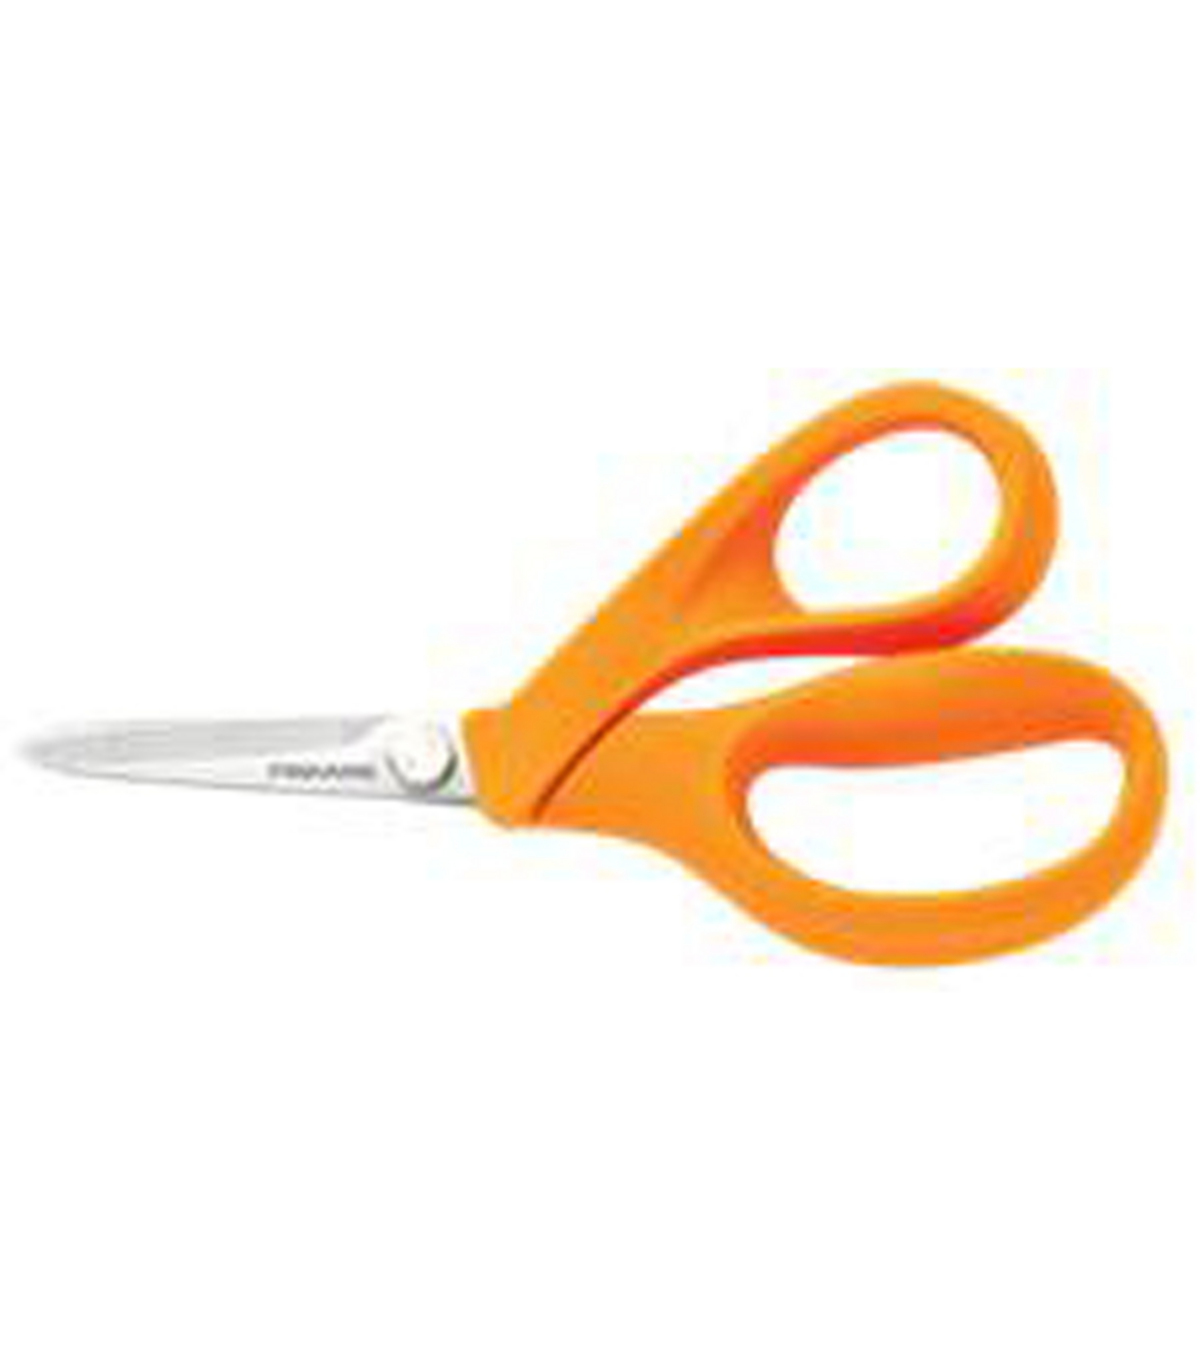 5In Razor Edge Scissors